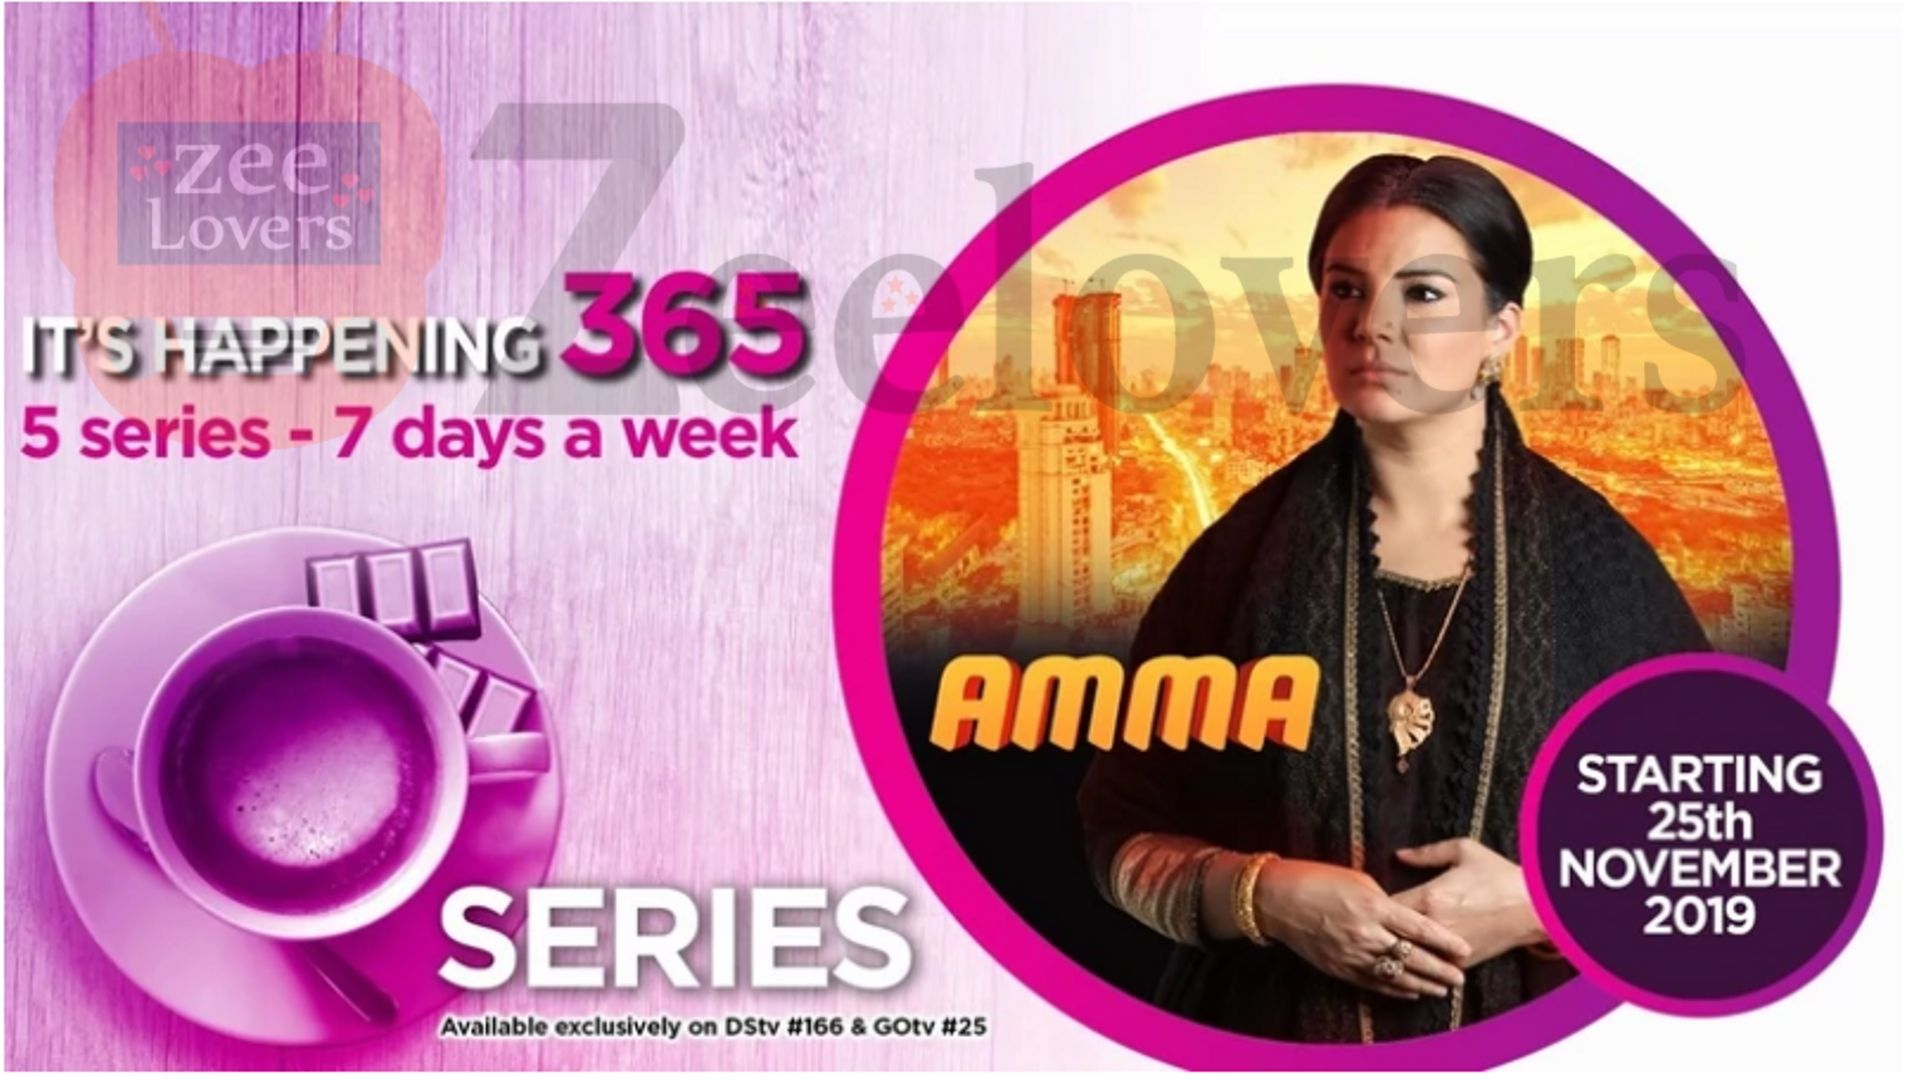 3. Zee World exciting lineup for 2020 - Amma